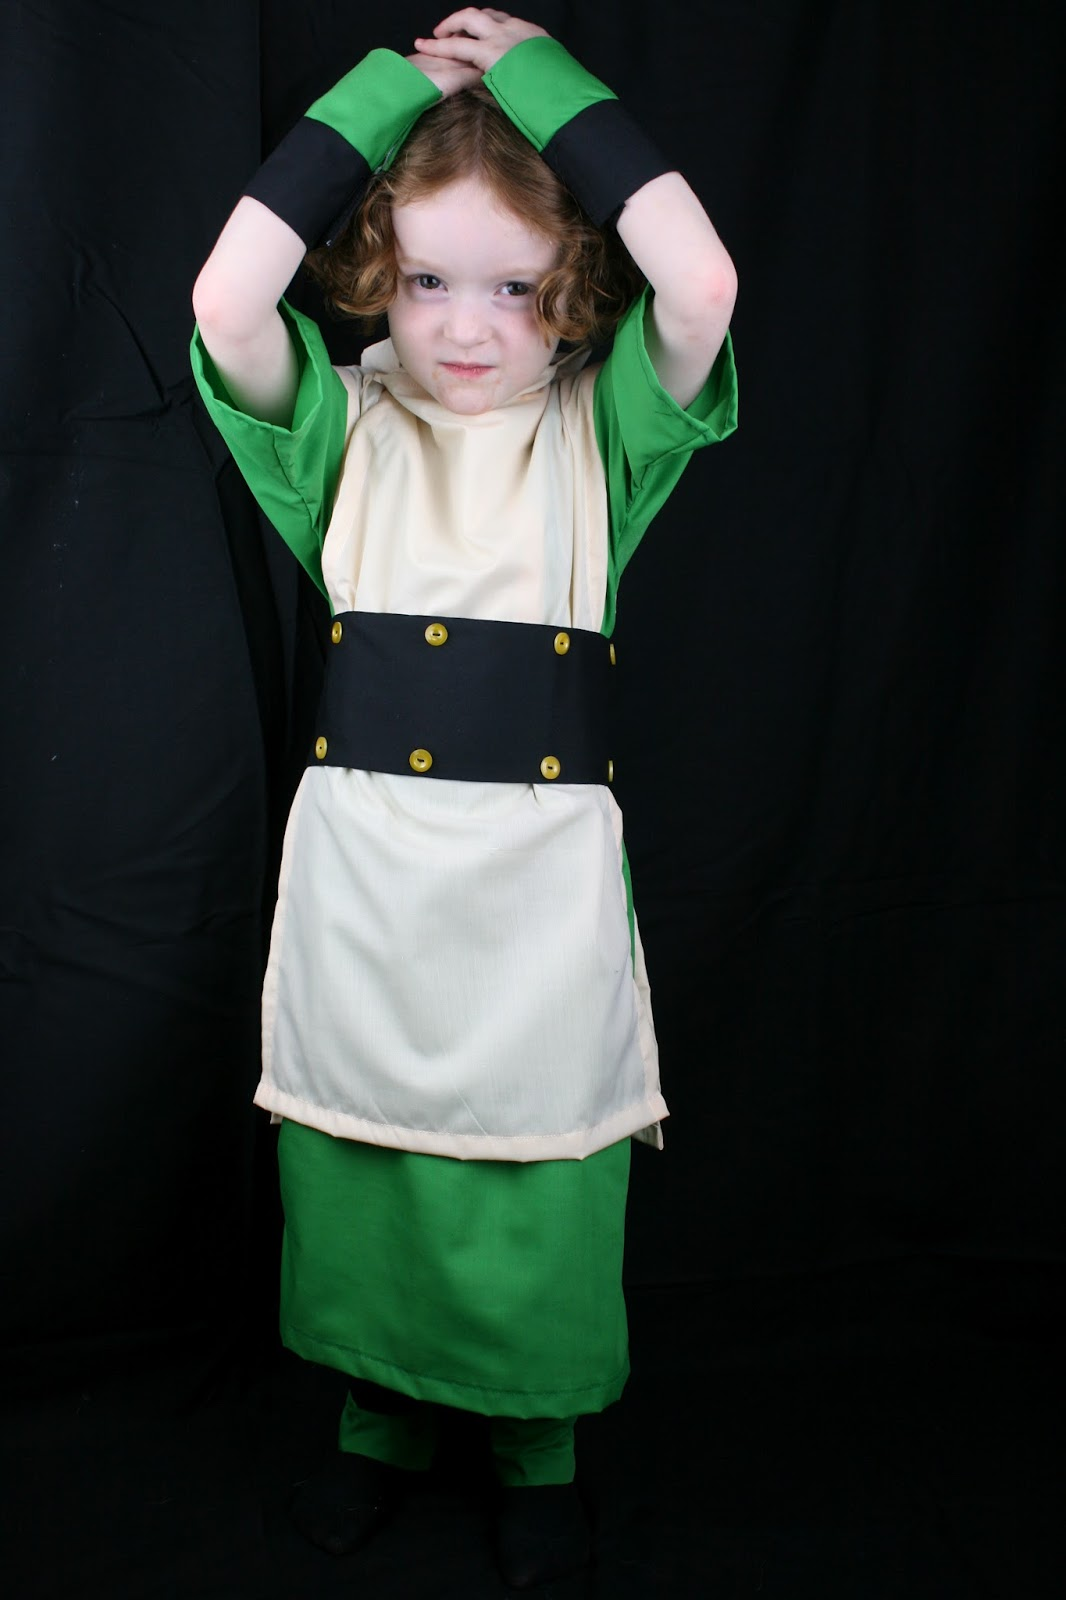 toph from avatar the last airbender ive been busy sewing halloween costumes this week